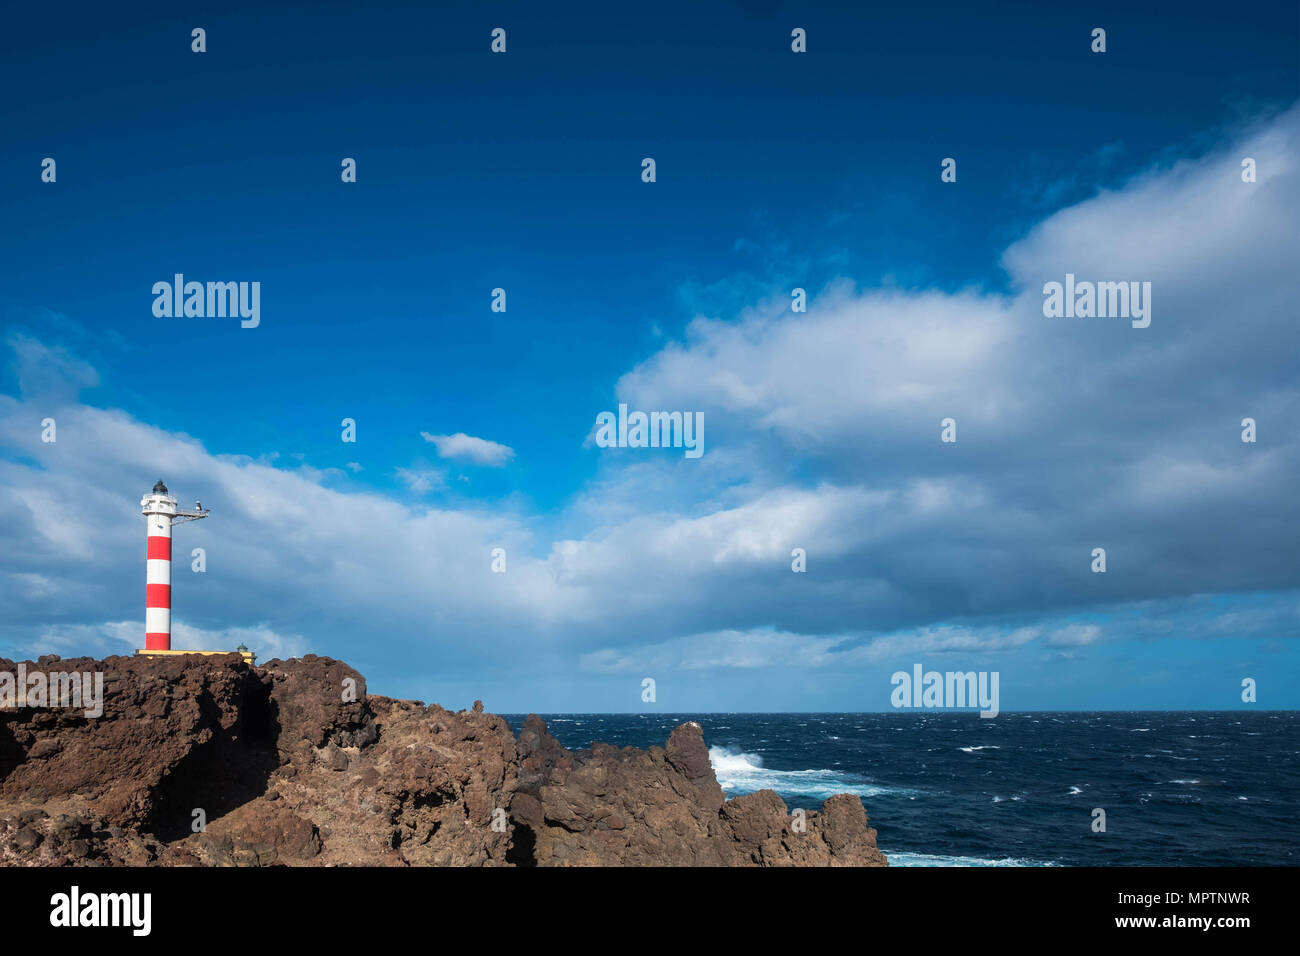 old style classic lighhouse on the coast of Tenerife in the middle of the atlantic ocean. Power of the wave and isolated home. Beautiful blue sky. Fre - Stock Image